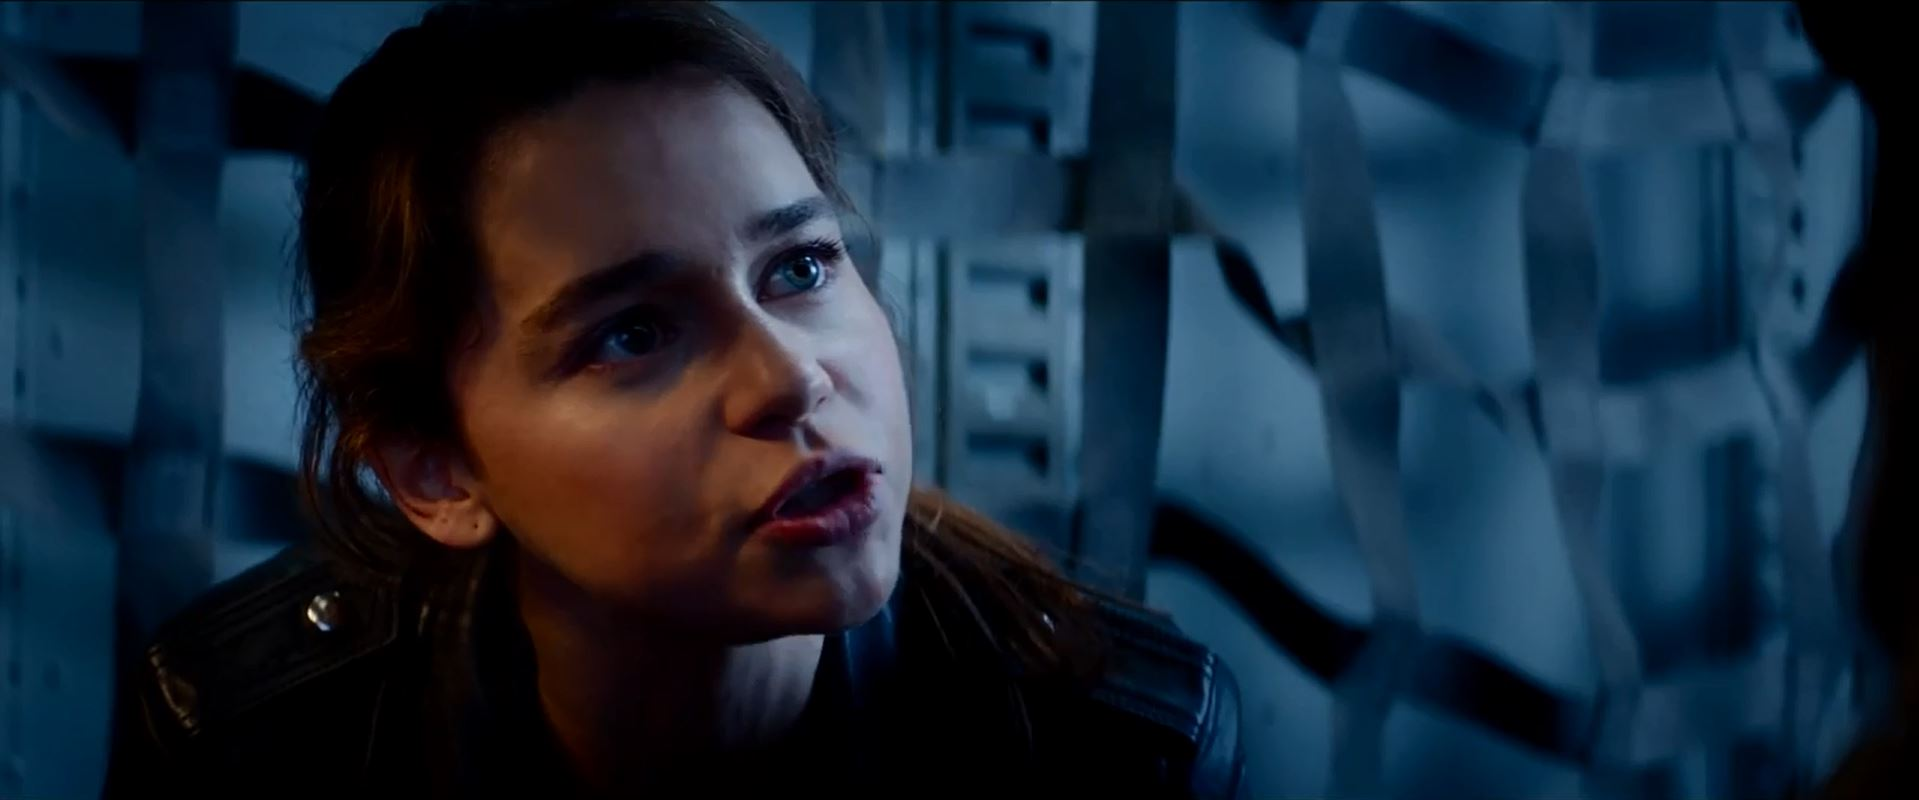 Terminator Genisys Emilia Clarke as Sarah Connor